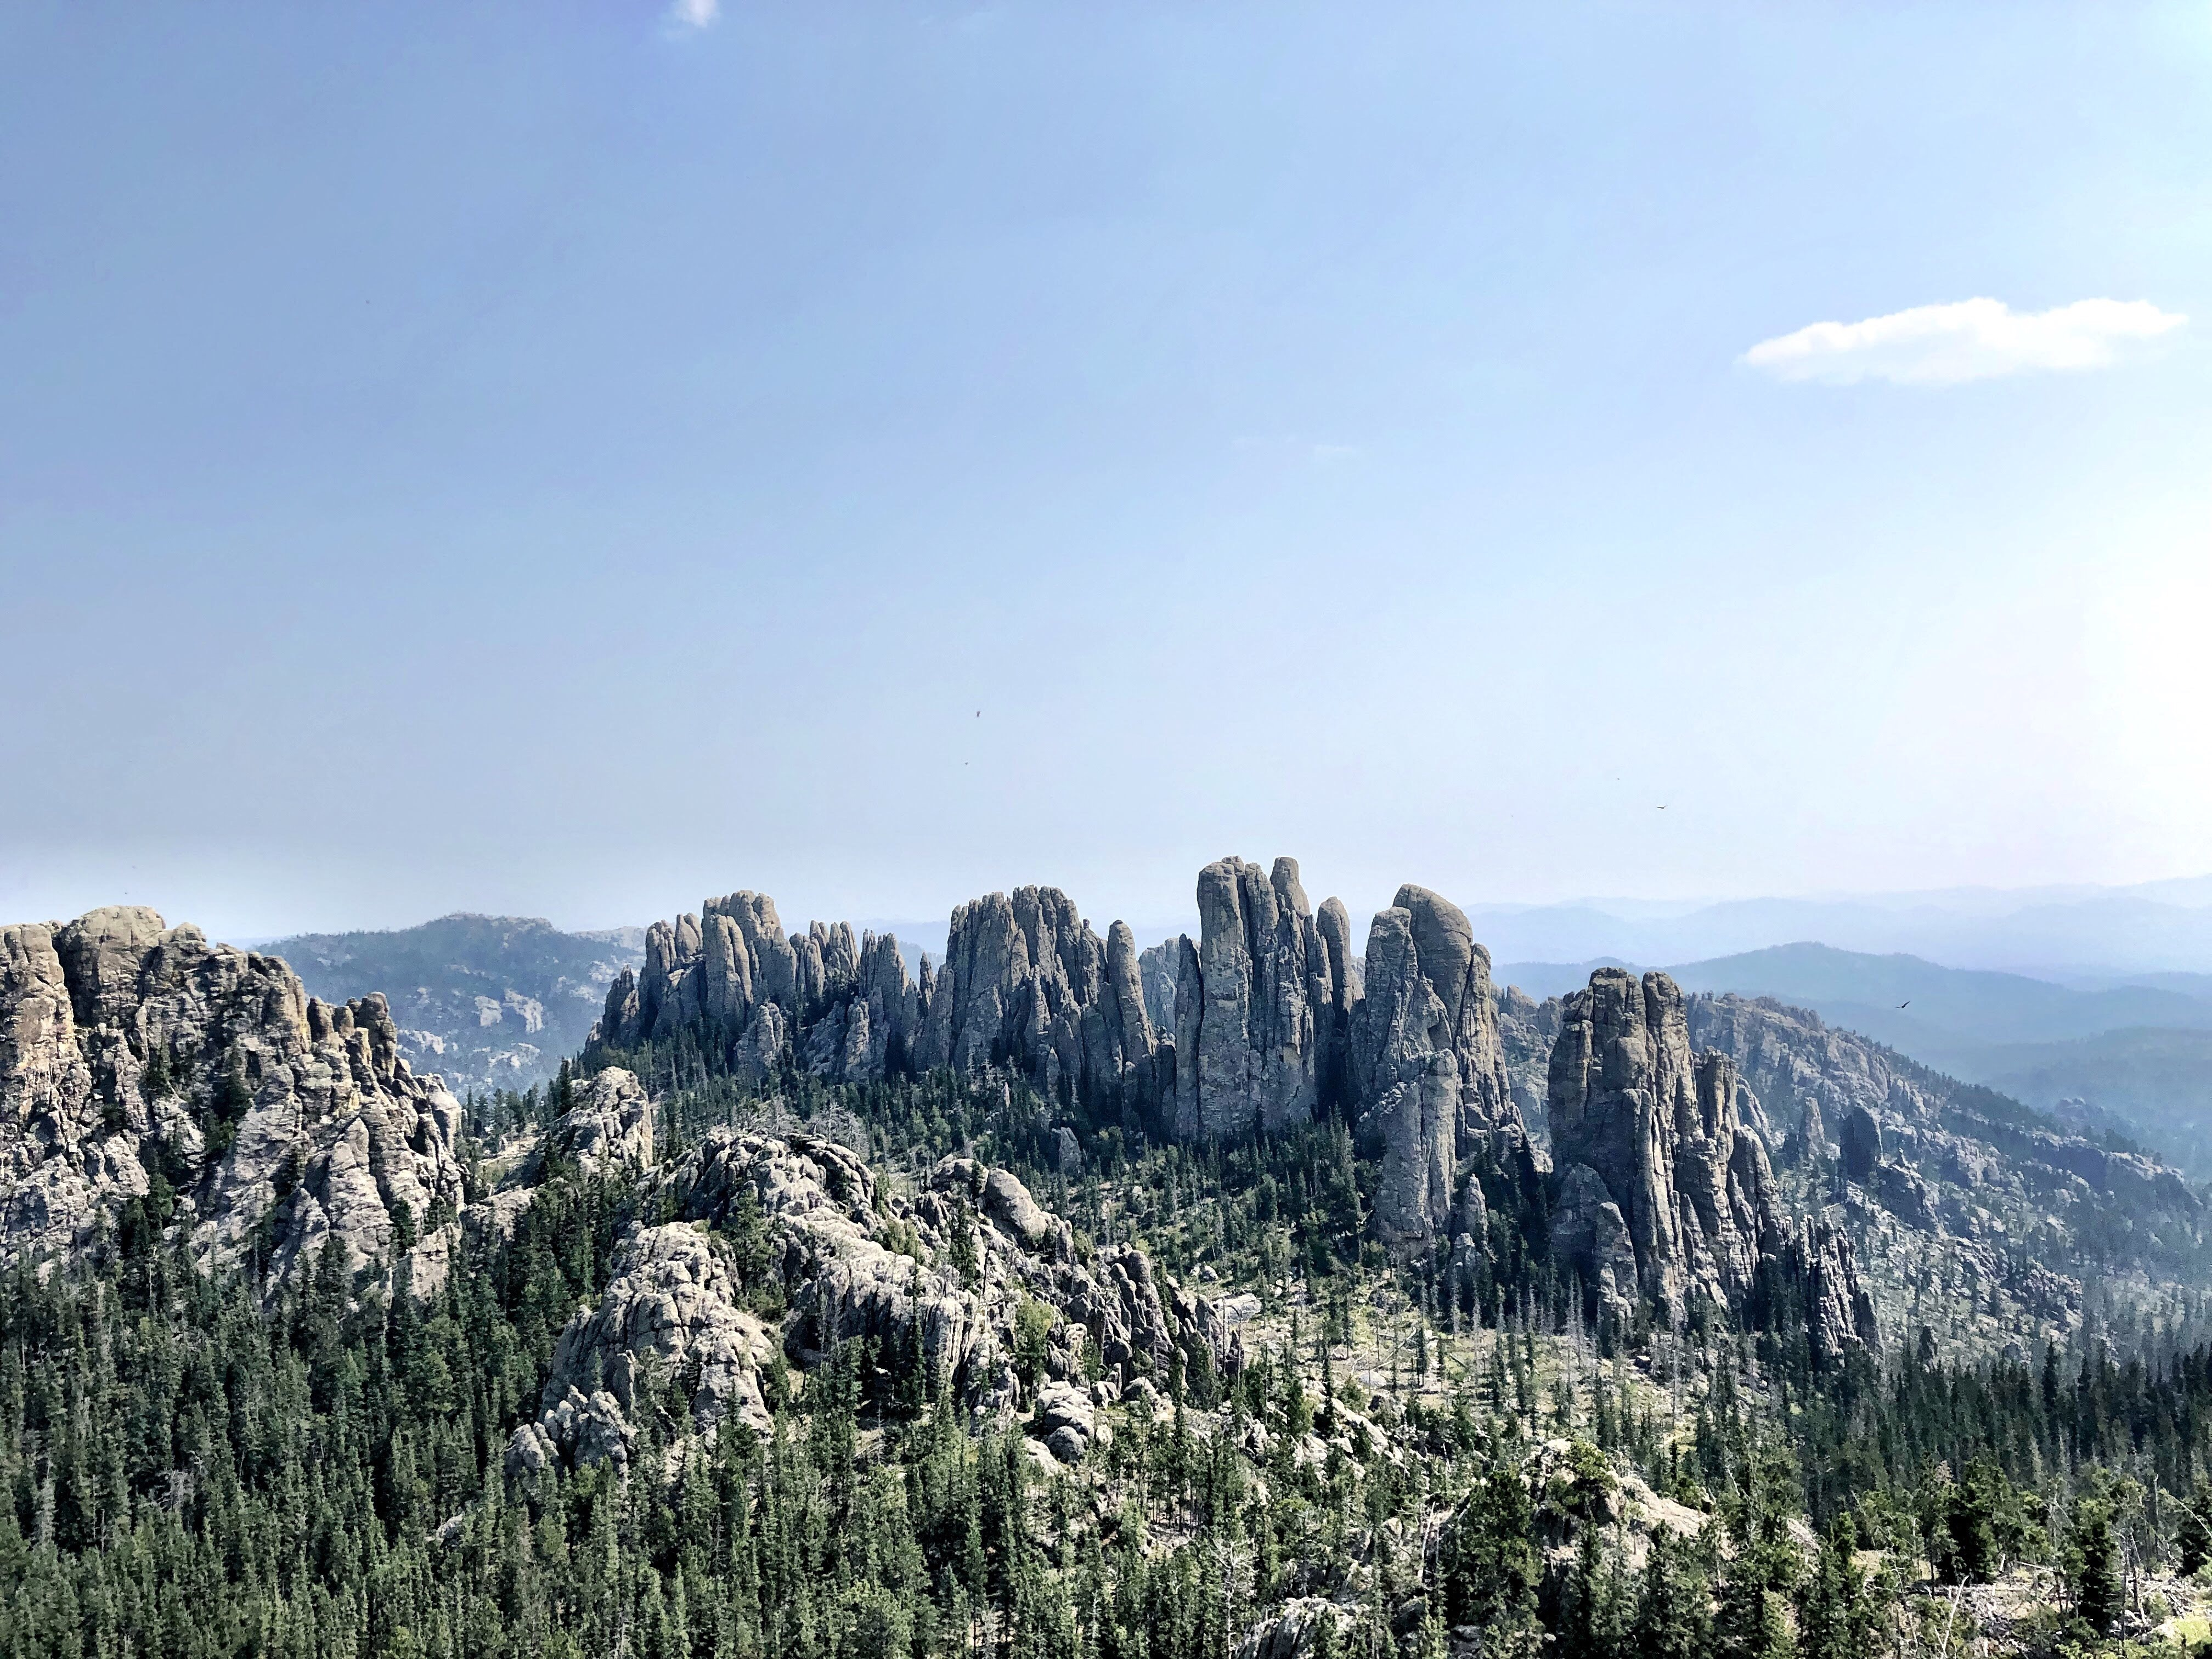 Cathedral Spires in Custer State Park looks like teeth